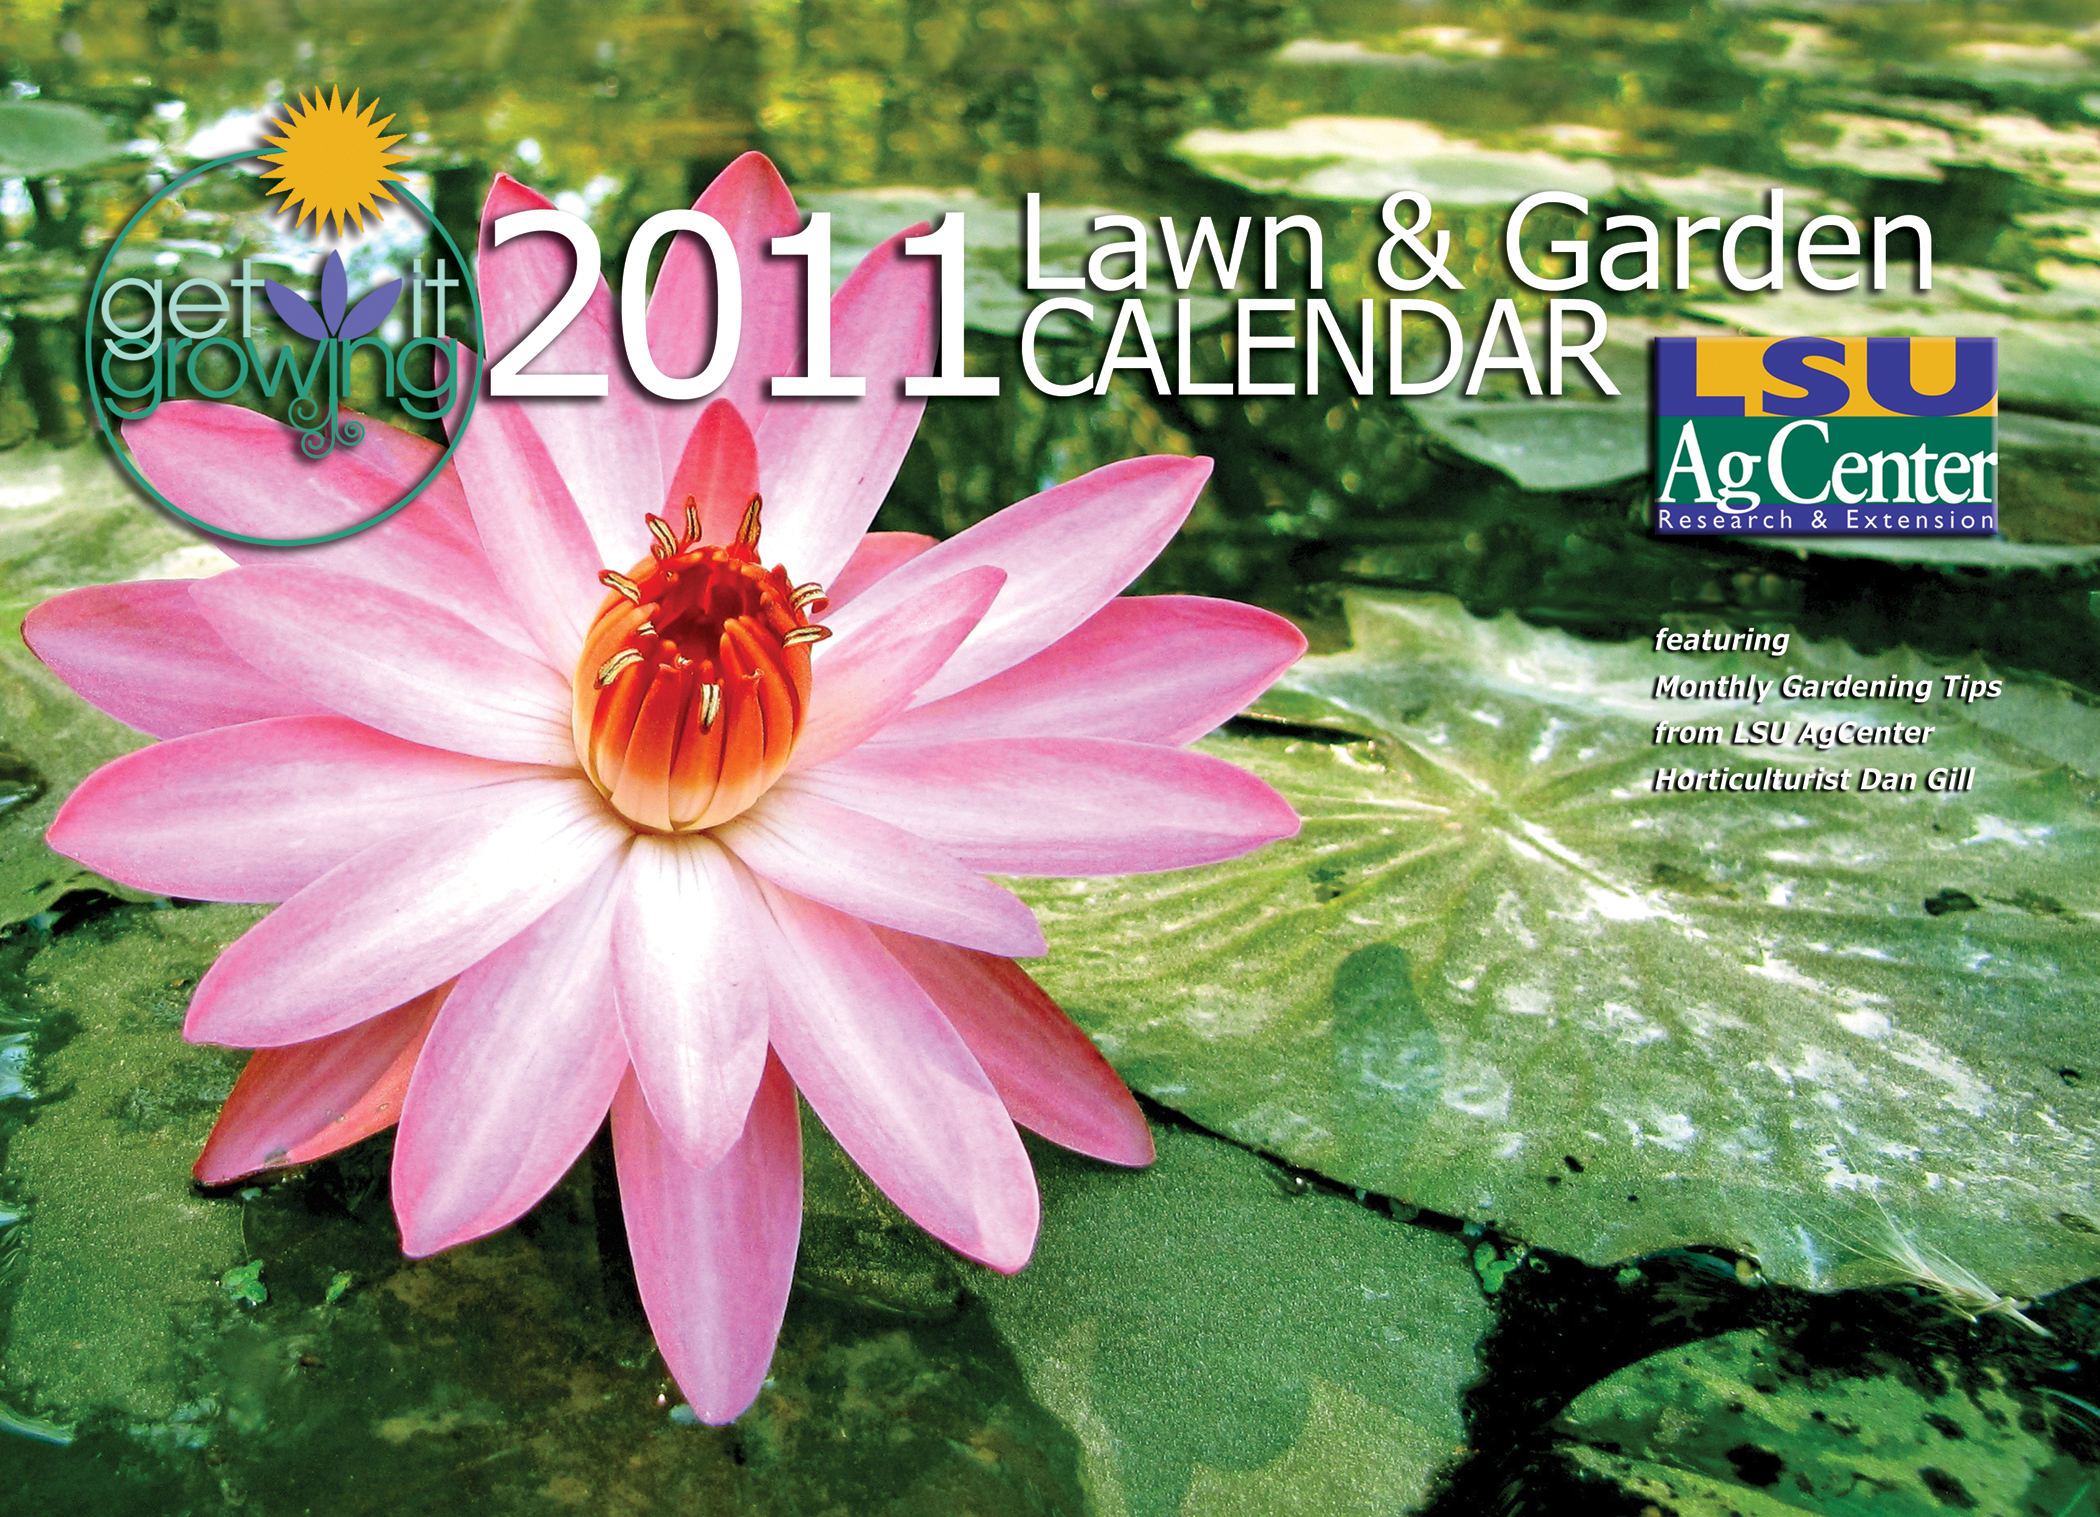 2011 calendar from LSU AgCenter helps you 'Get It Growing'